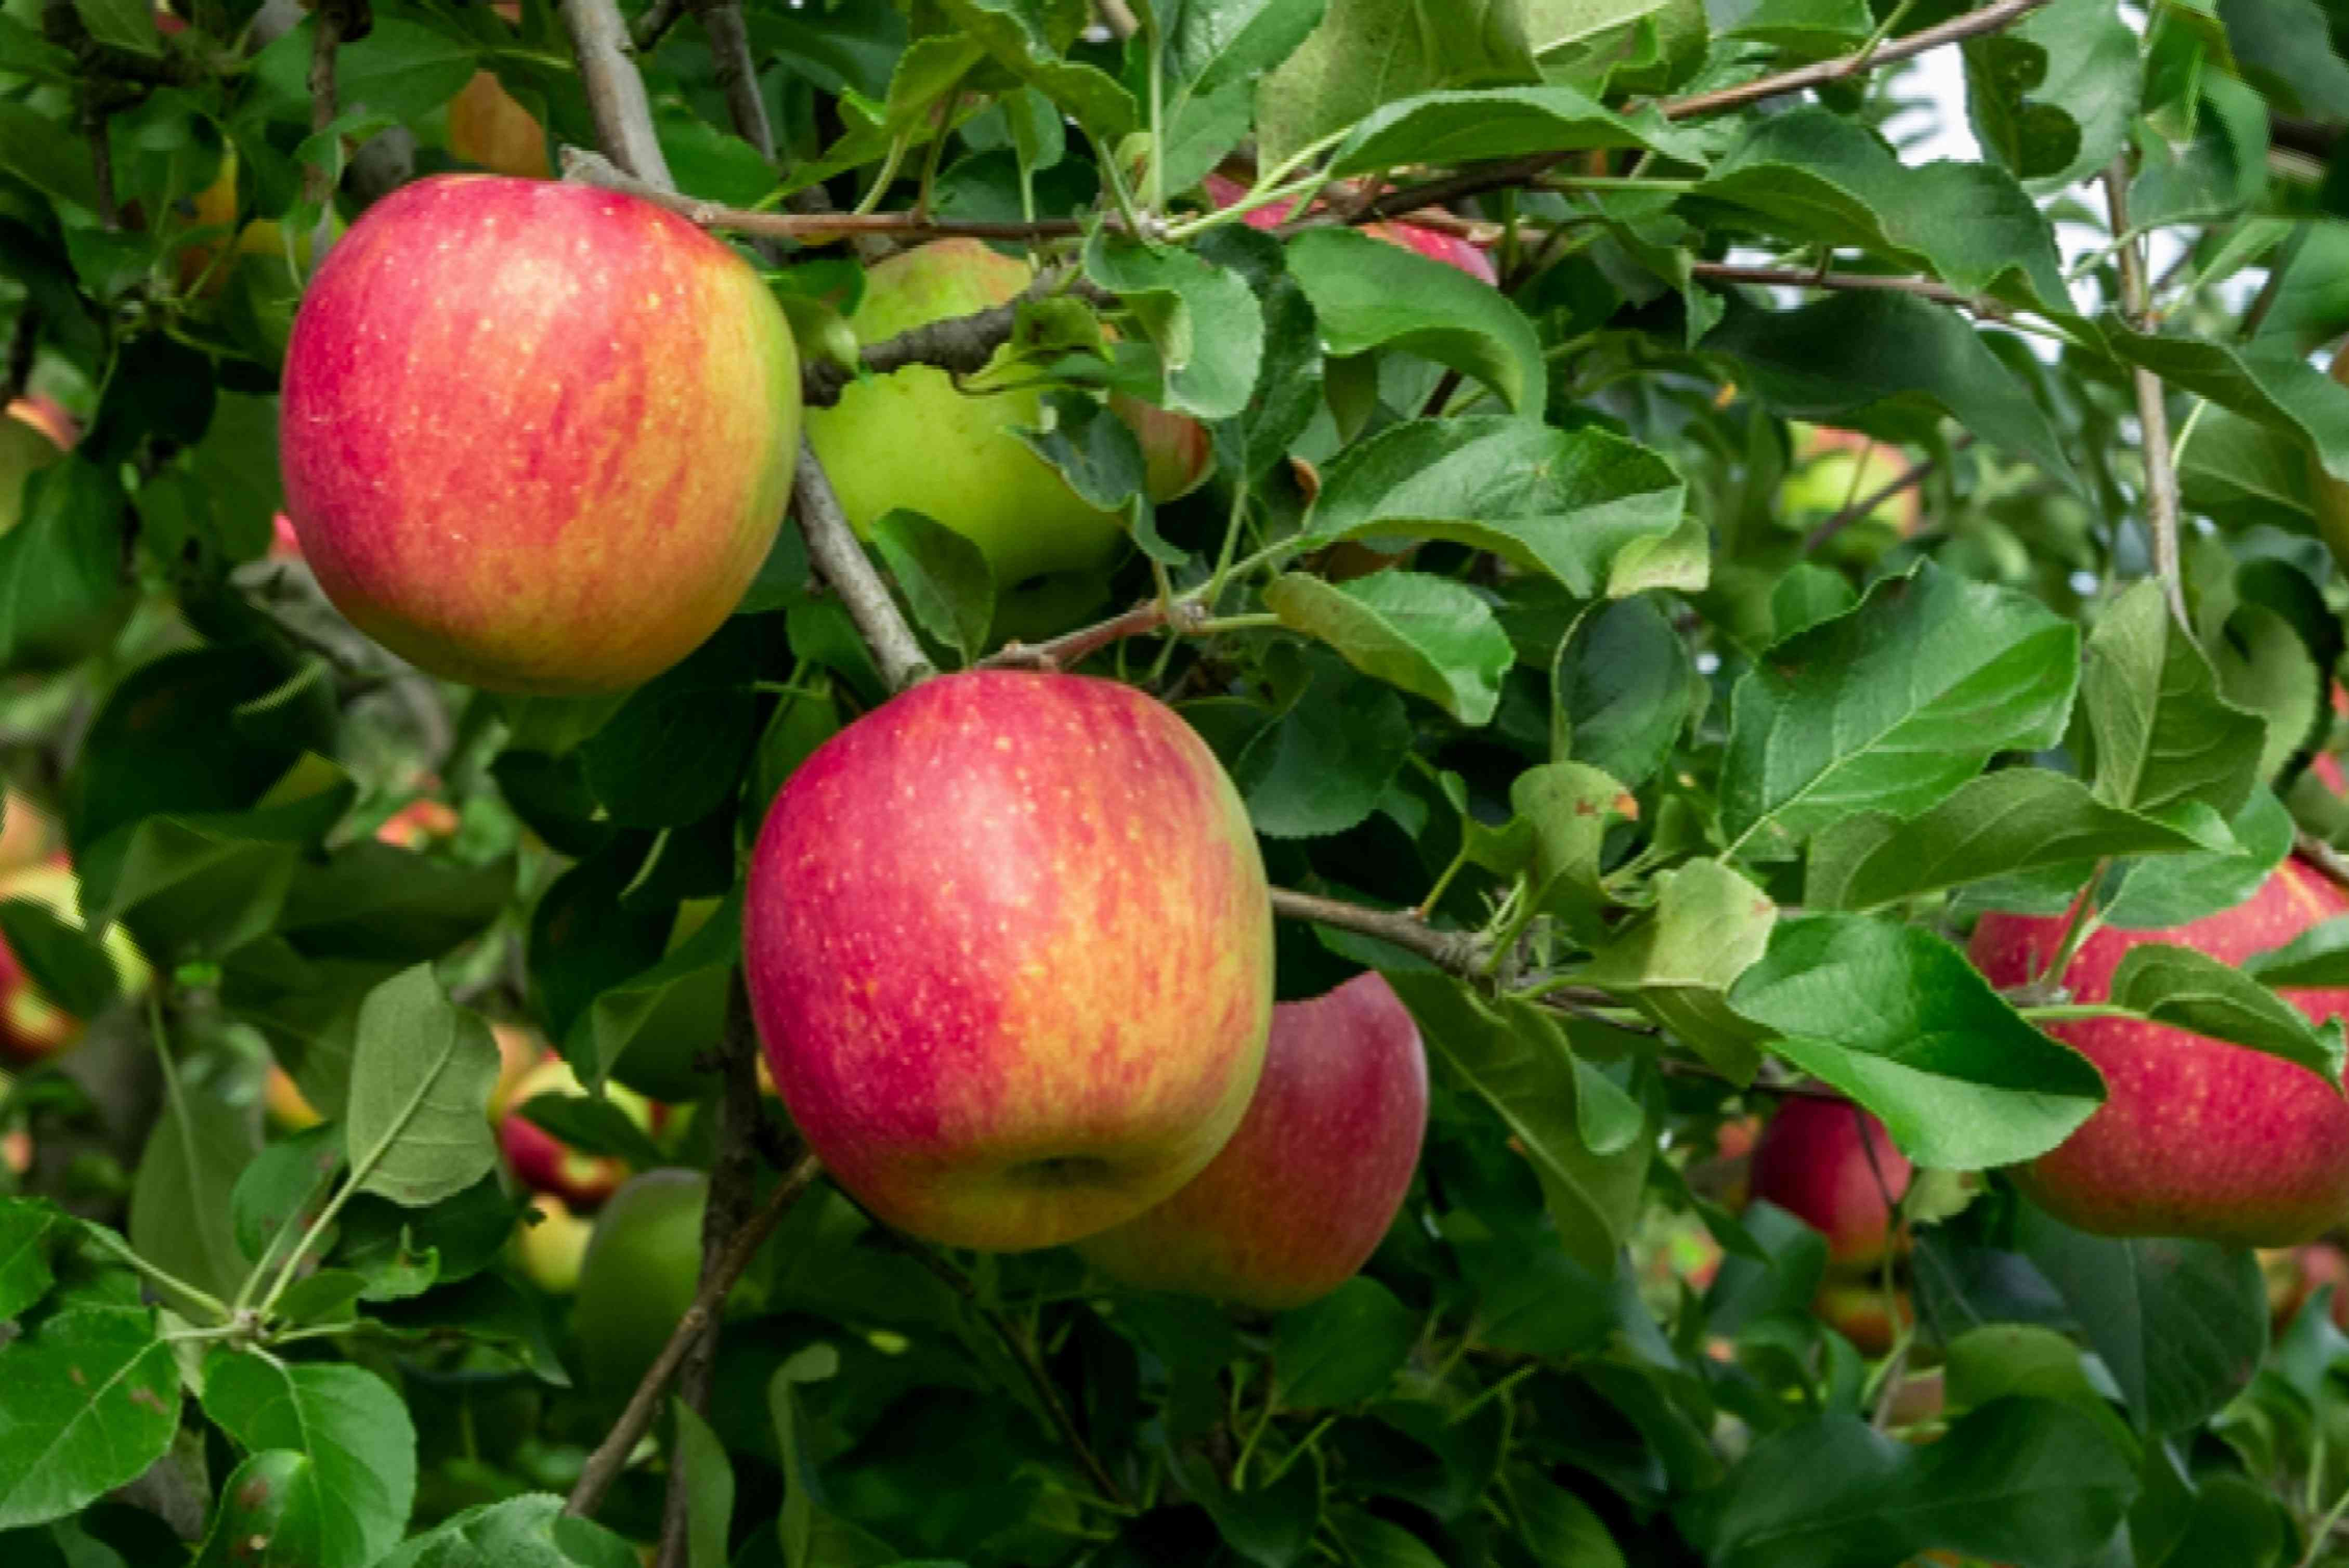 Gravenstein apple tree with red and yellow apples hanging on branches closeup